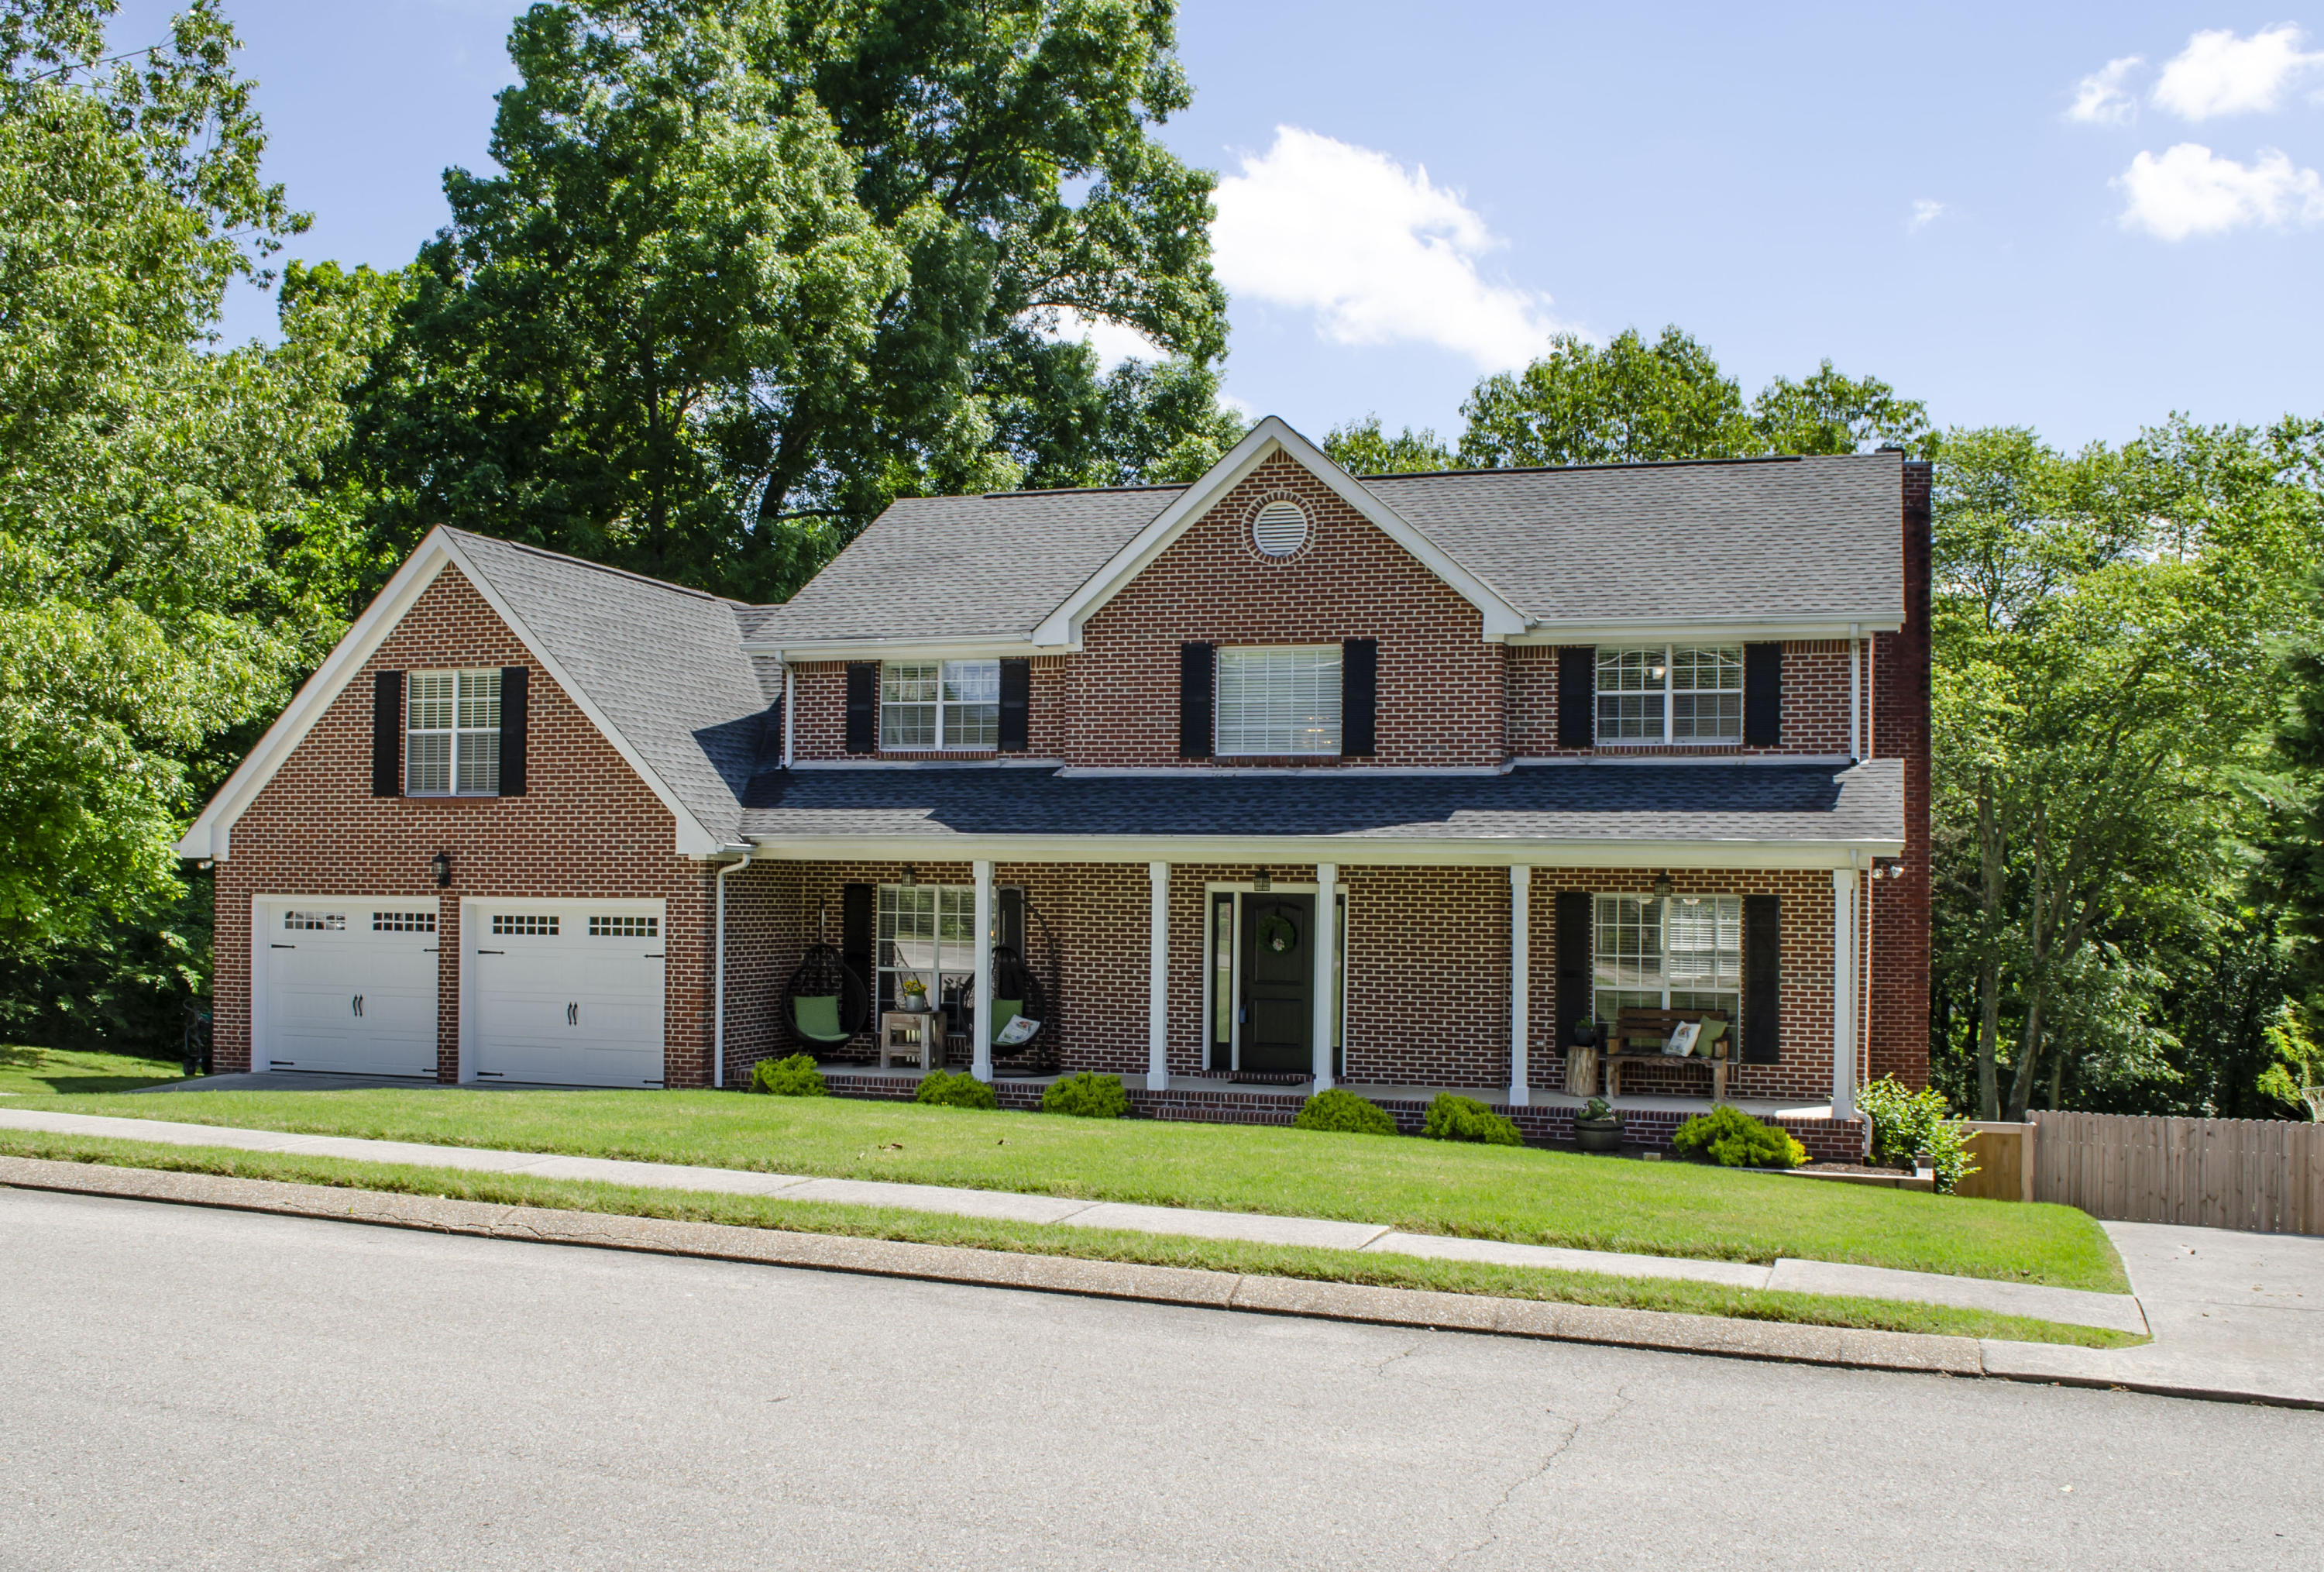 4026 Timber Trace Dr, Ooltewah, TN 37363